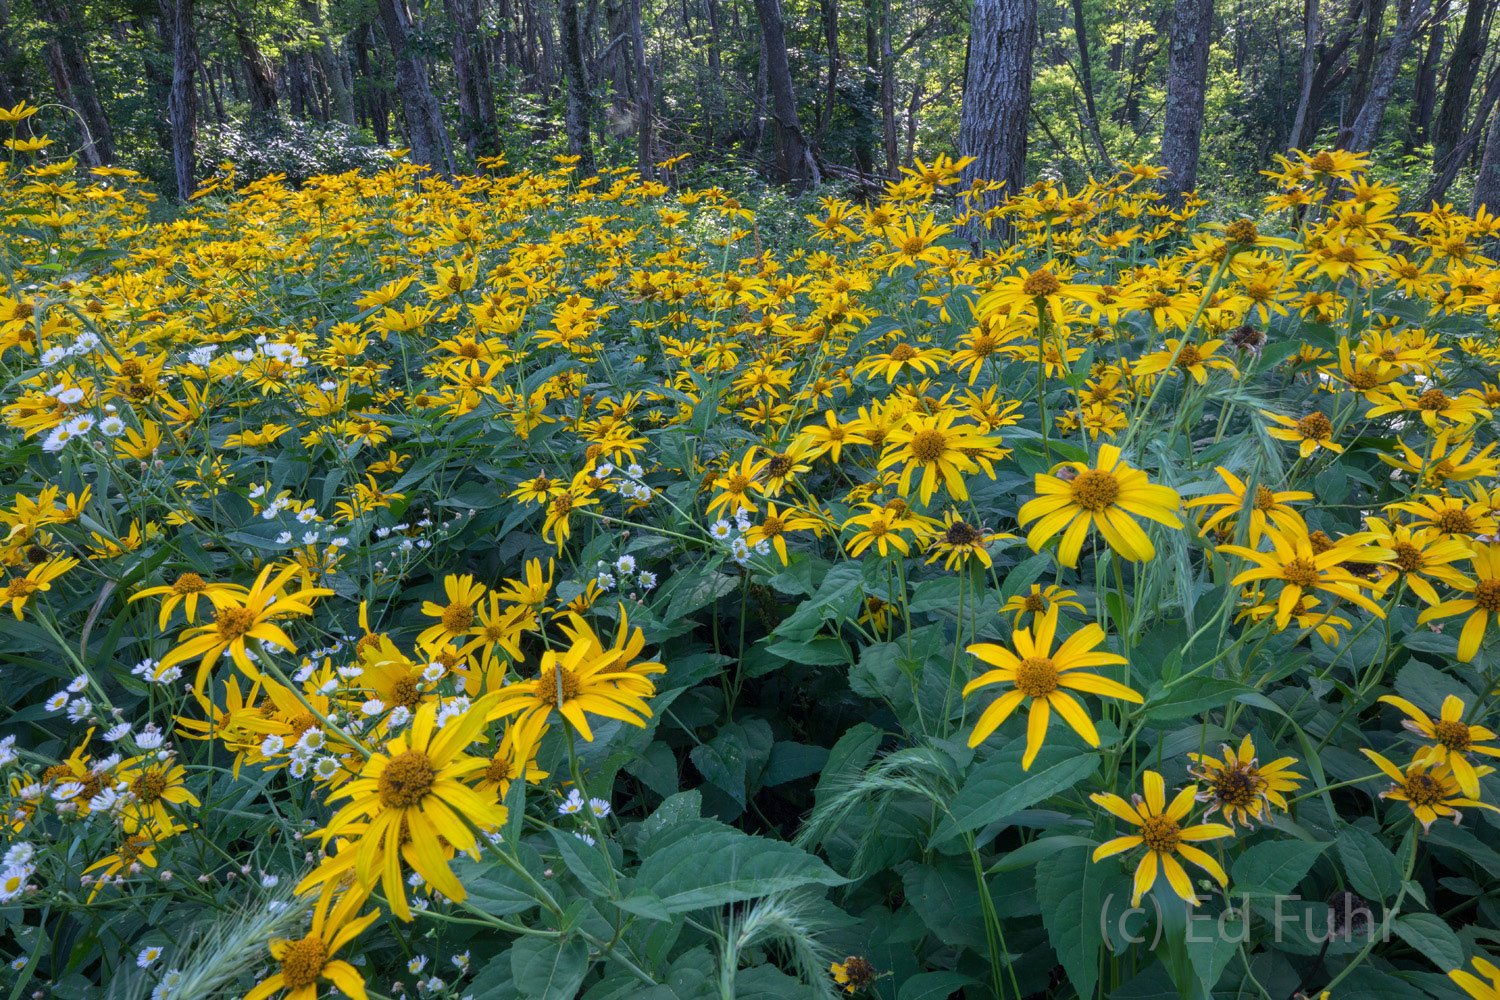 Wildflowers at the Forest's Edge